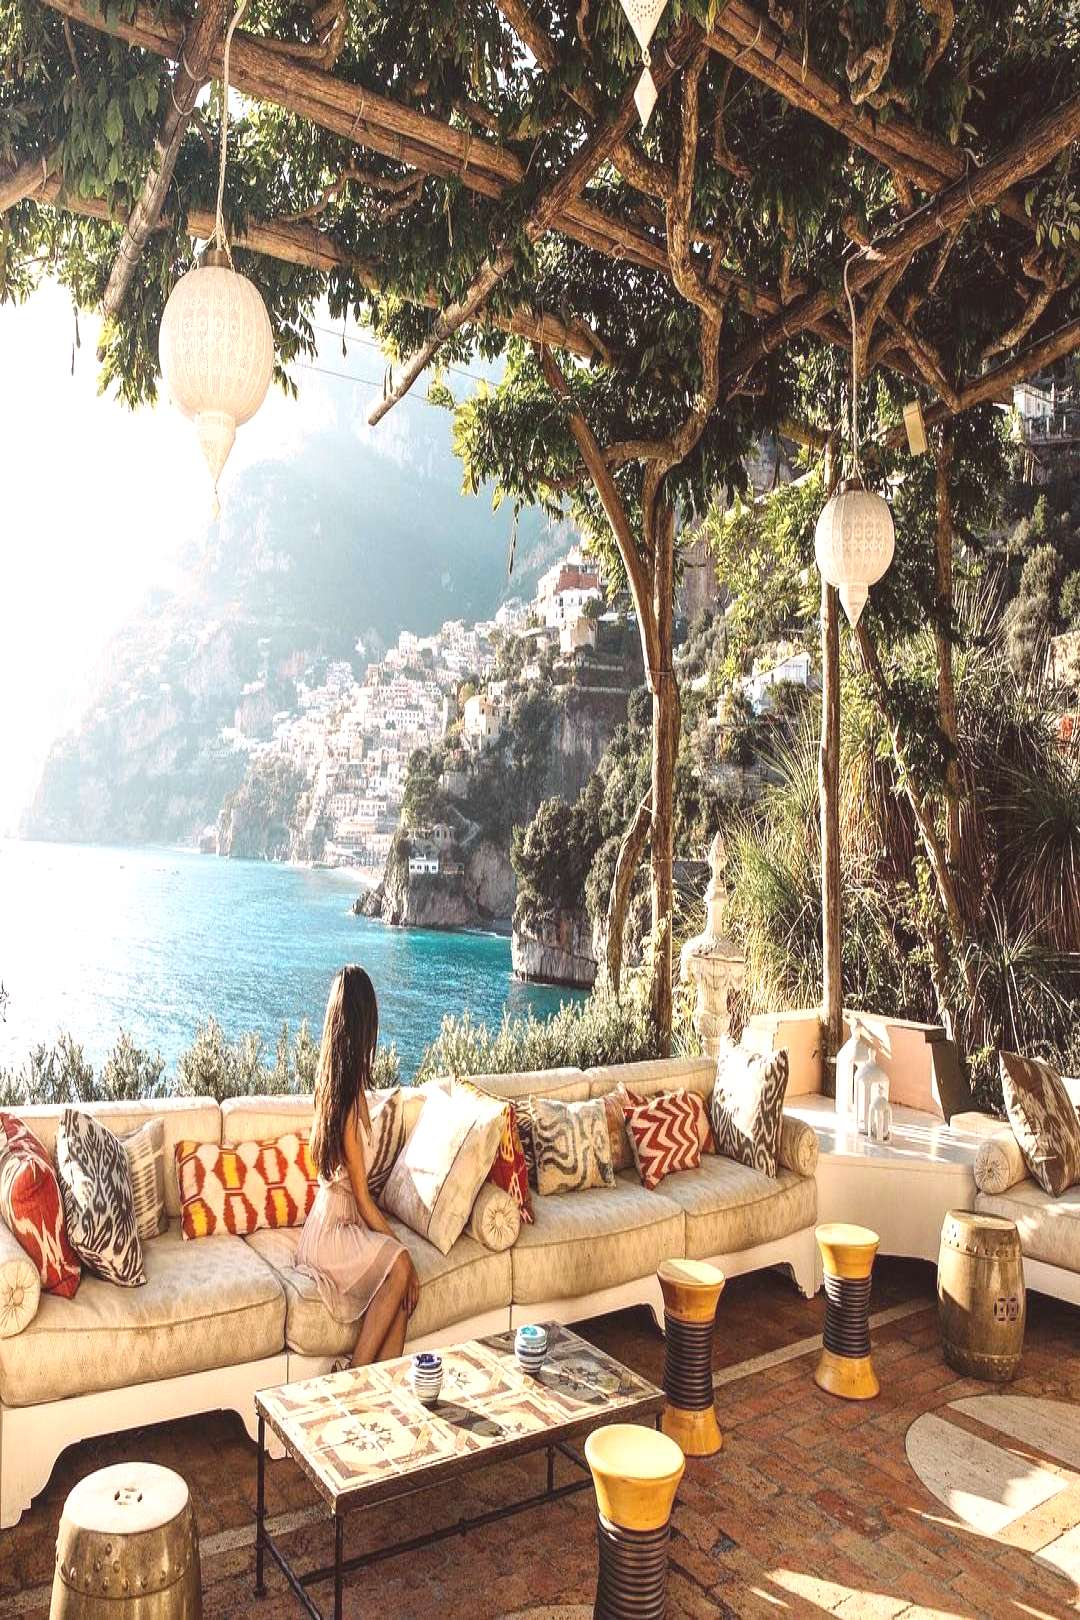 The World's 25 Best Restaurants With a View -  The World's 25 Best Restaurants With a View  -